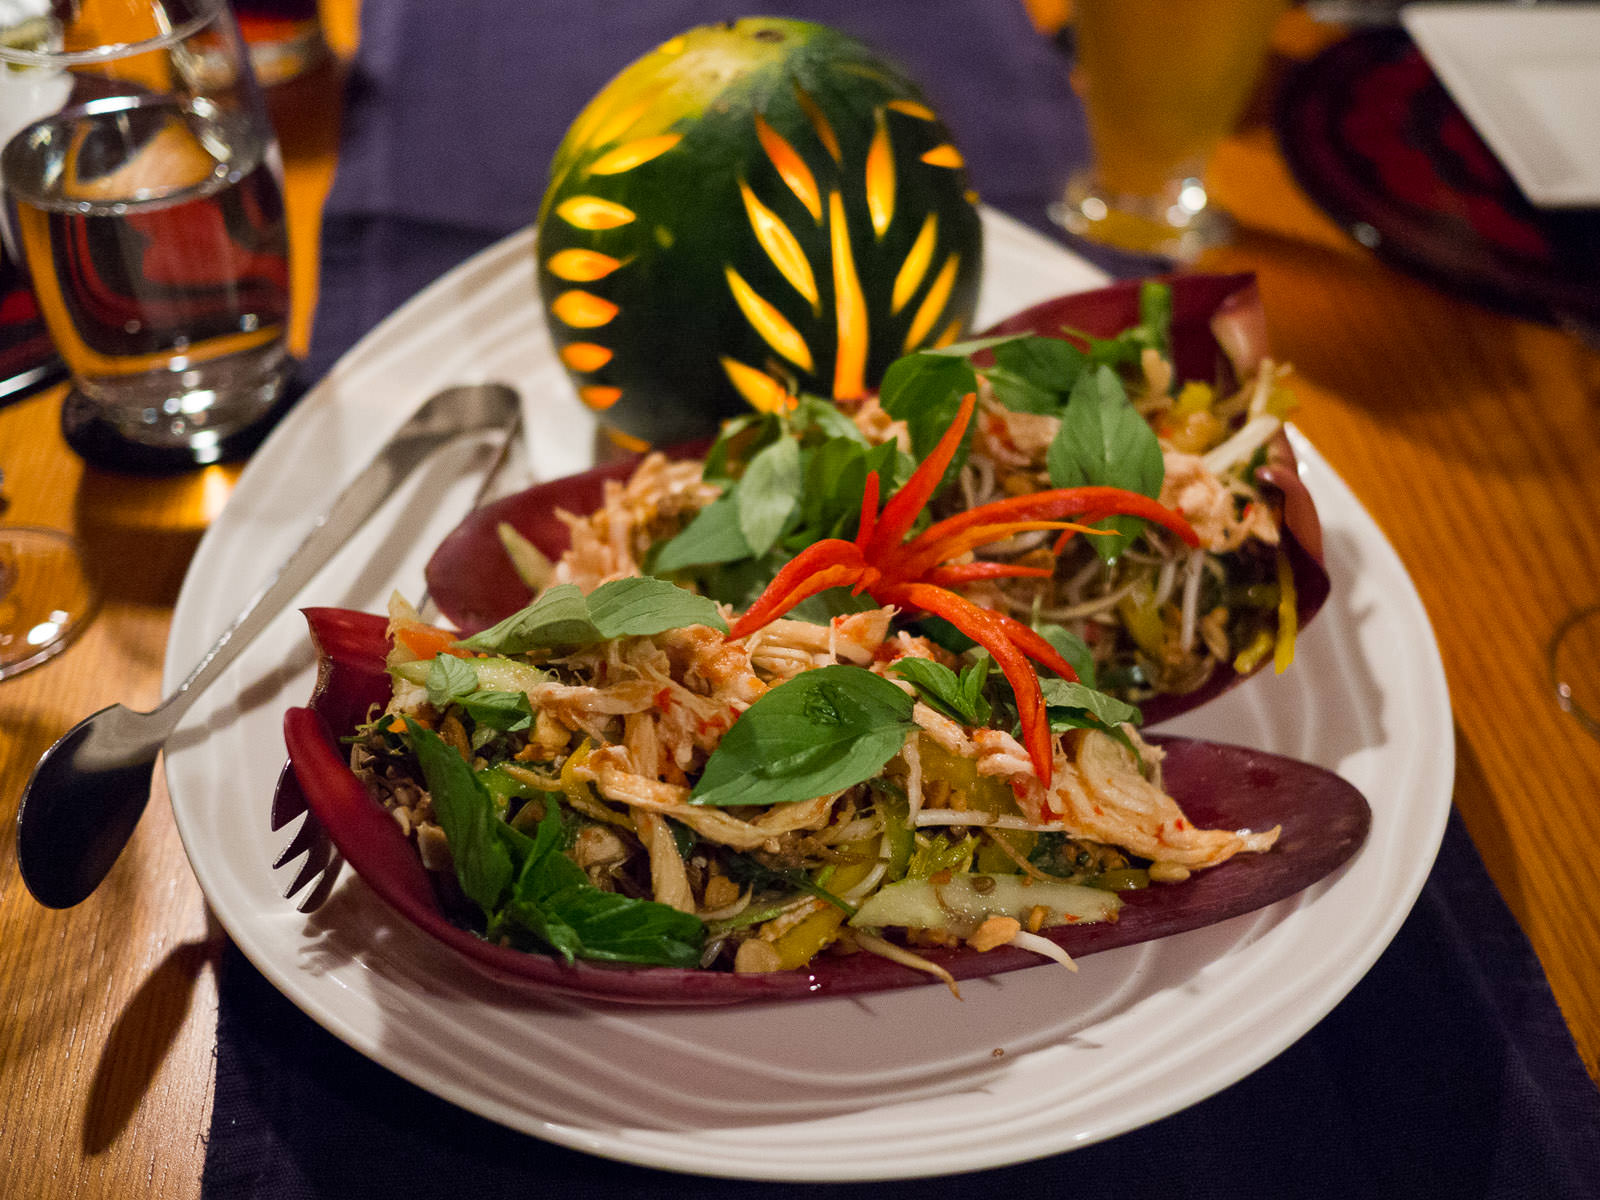 Banana flower salad - dinner starter